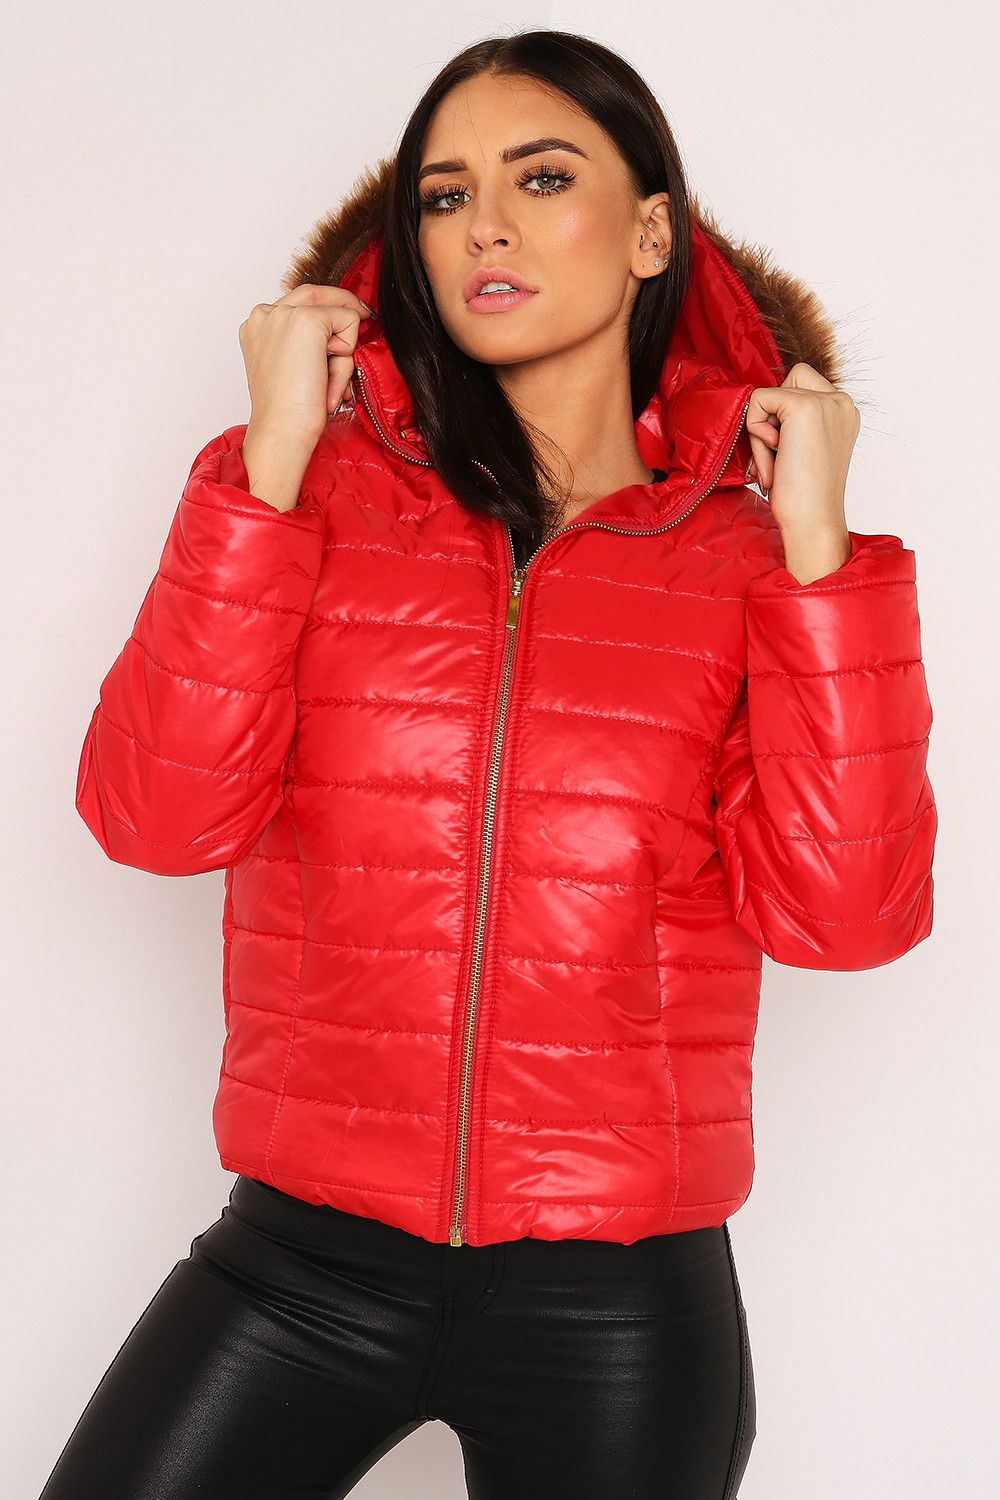 Red Puffer Jacket With Faux Fur Hood Lasula [ 1500 x 1000 Pixel ]